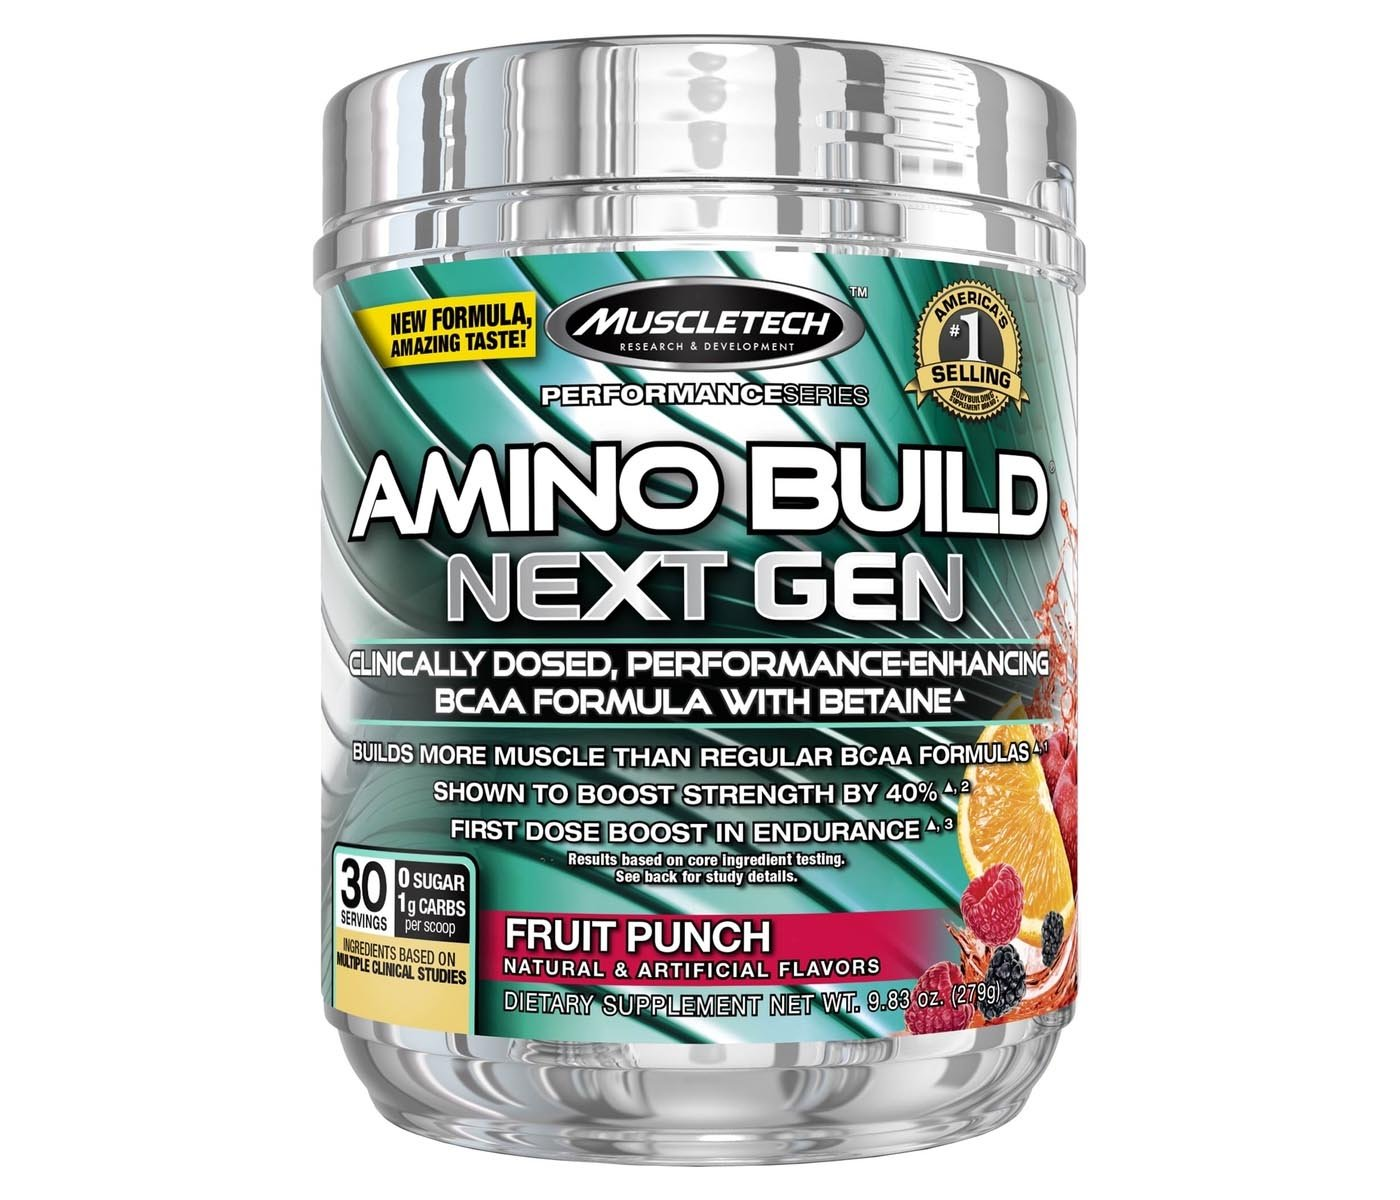 MuscleTech Amino Build - Available in: White Raspberry• Builds more muscle than regular BCAA formulas• Features 8g of 2:1:1 instantized aminos• Shown to boost strengthBCAAs are comprised of three powerful amino acids – leucine, isoleucine and valine – and are perfect for any hard-training athlete because they serve as primary building blocks for muscle and help combat muscle loss and protein breakdown, especially during intense training.